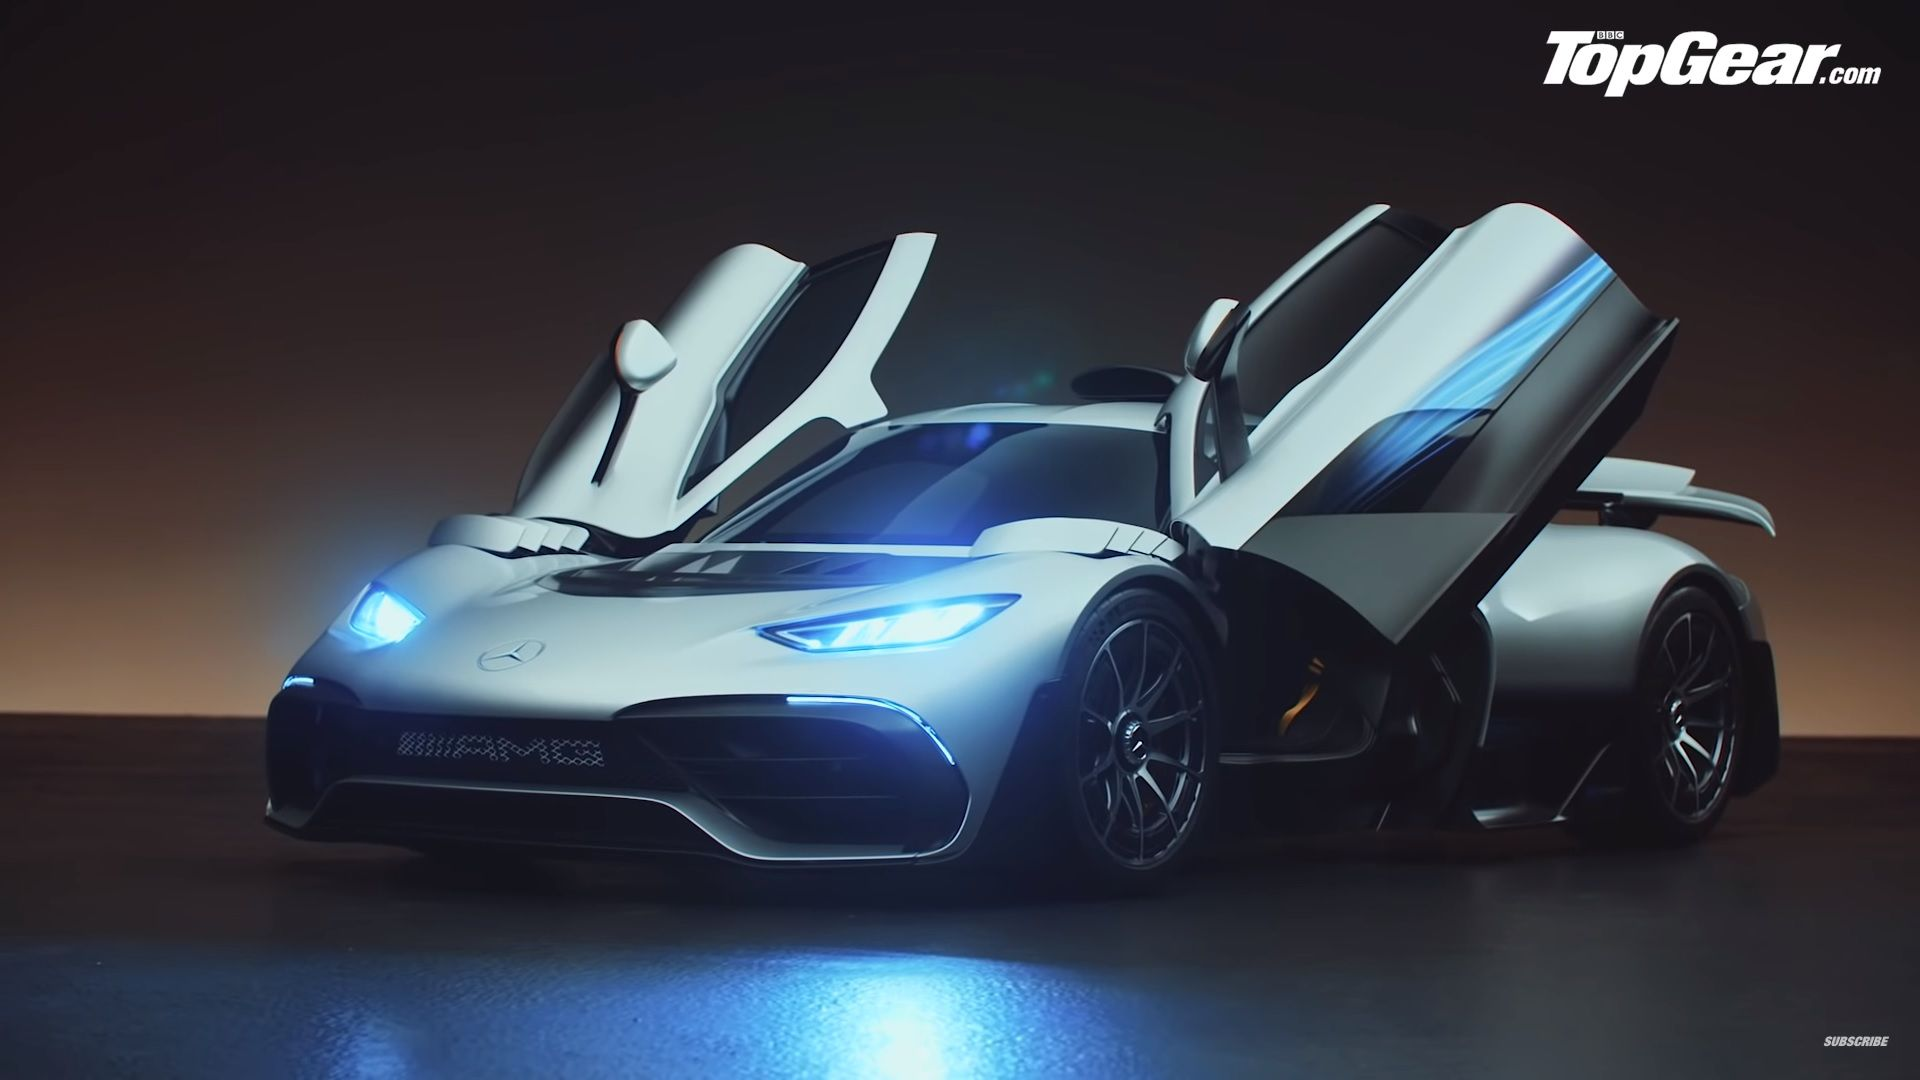 Details Of The 2020 Mercedes Amg Project One Have Been Revealed And It Ll Even Beat The 2018 Bugatti Chiron Top Speed Bugatti Chiron Mercedes Amg Sports Cars Bugatti